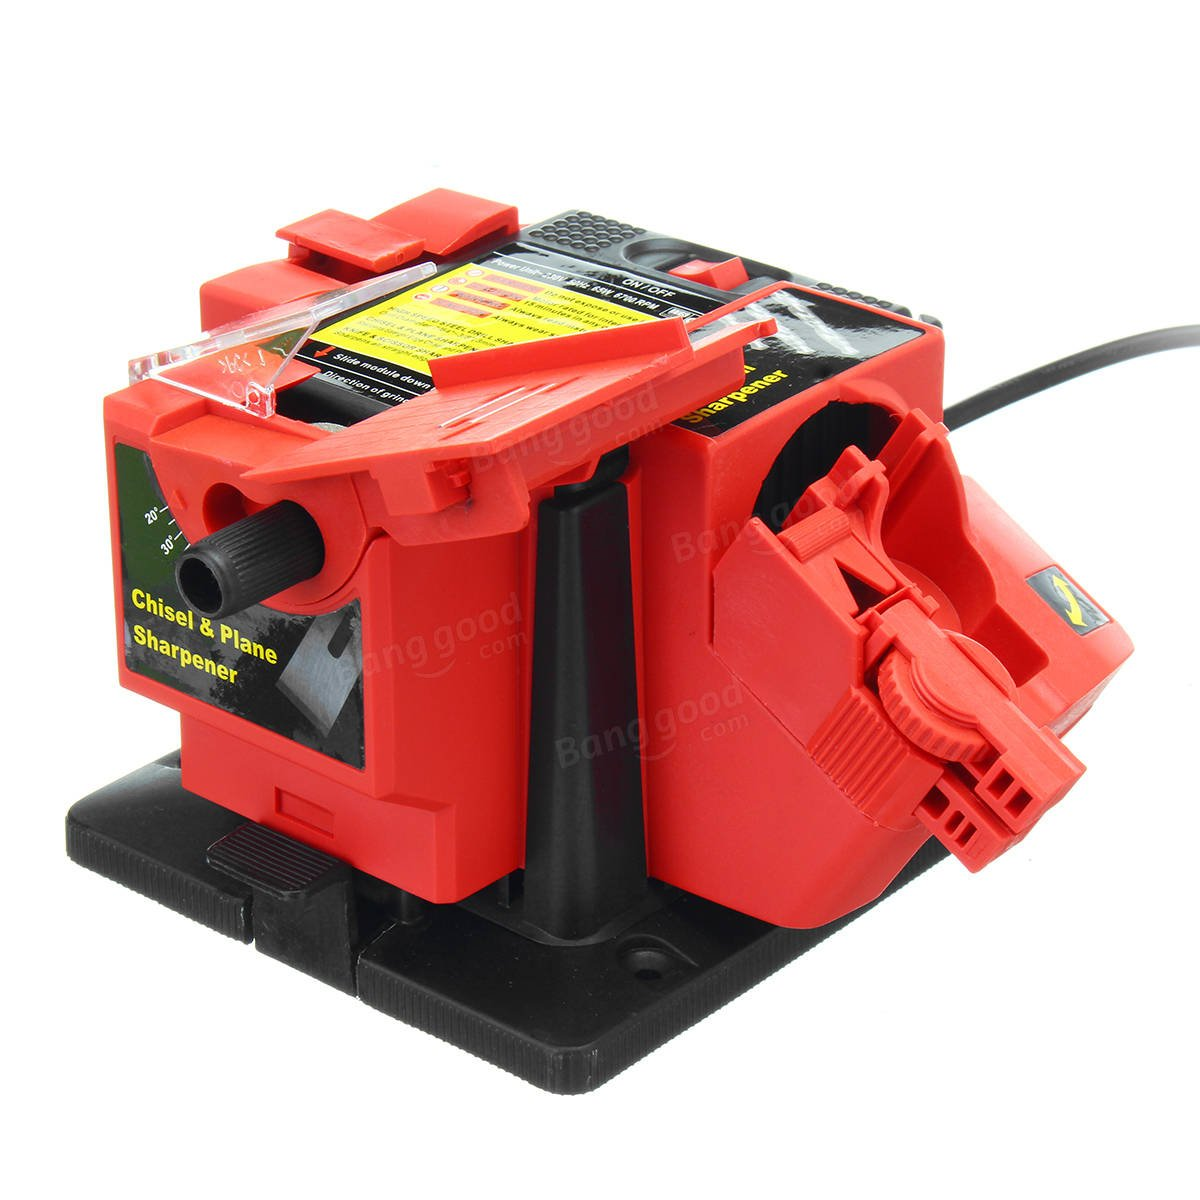 220V Multipurpose Sharpener for Drill Bits Chisels Planer ...